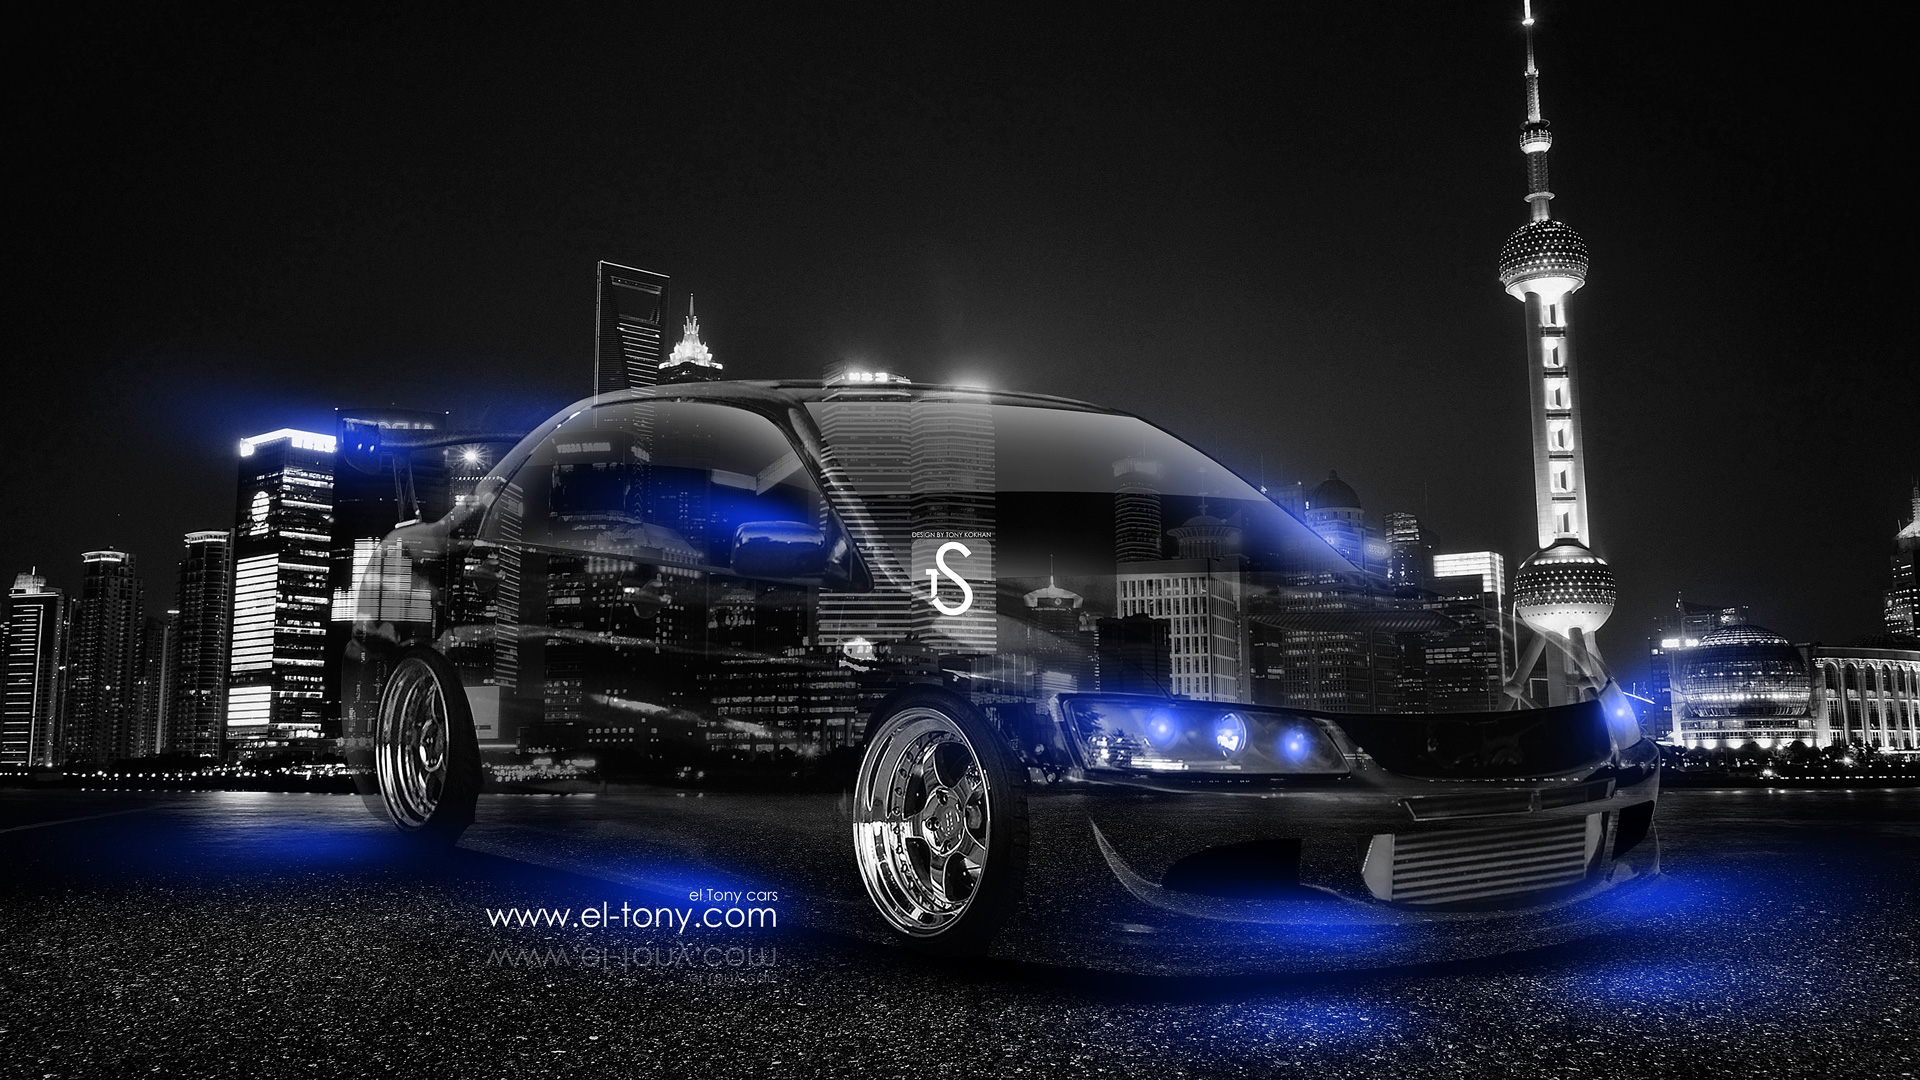 Attrayant Mitsubishi Lancer Evolution JDM Crystal City Car 2014